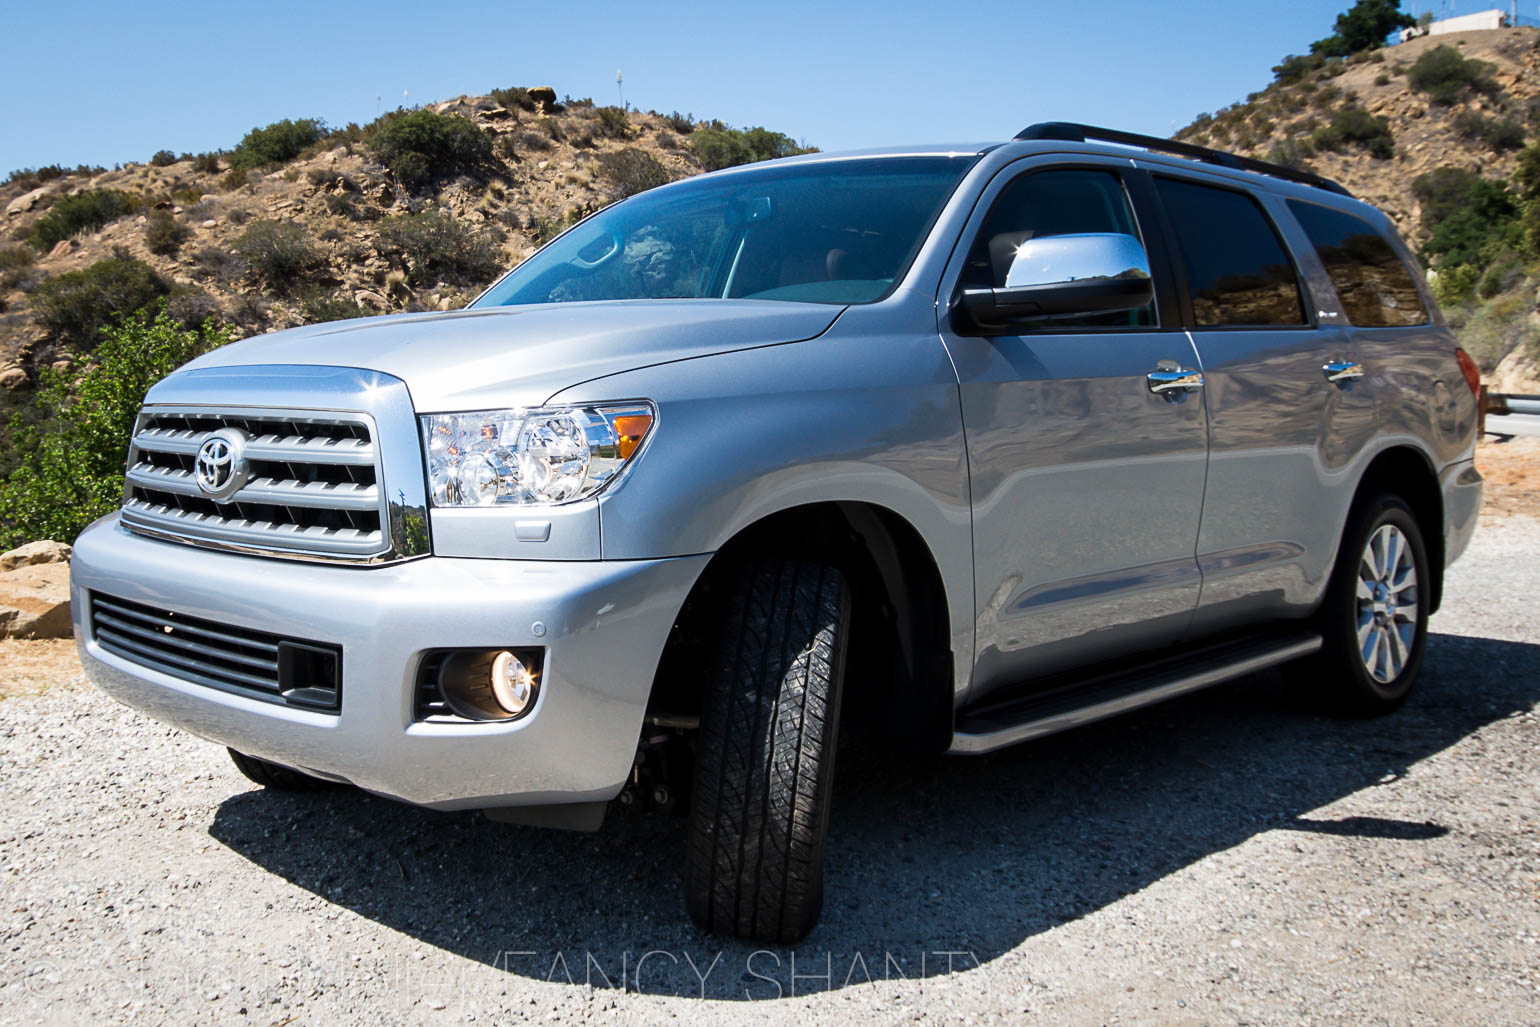 2016 toyota sequoia platinum 4wd fancy shanty. Black Bedroom Furniture Sets. Home Design Ideas